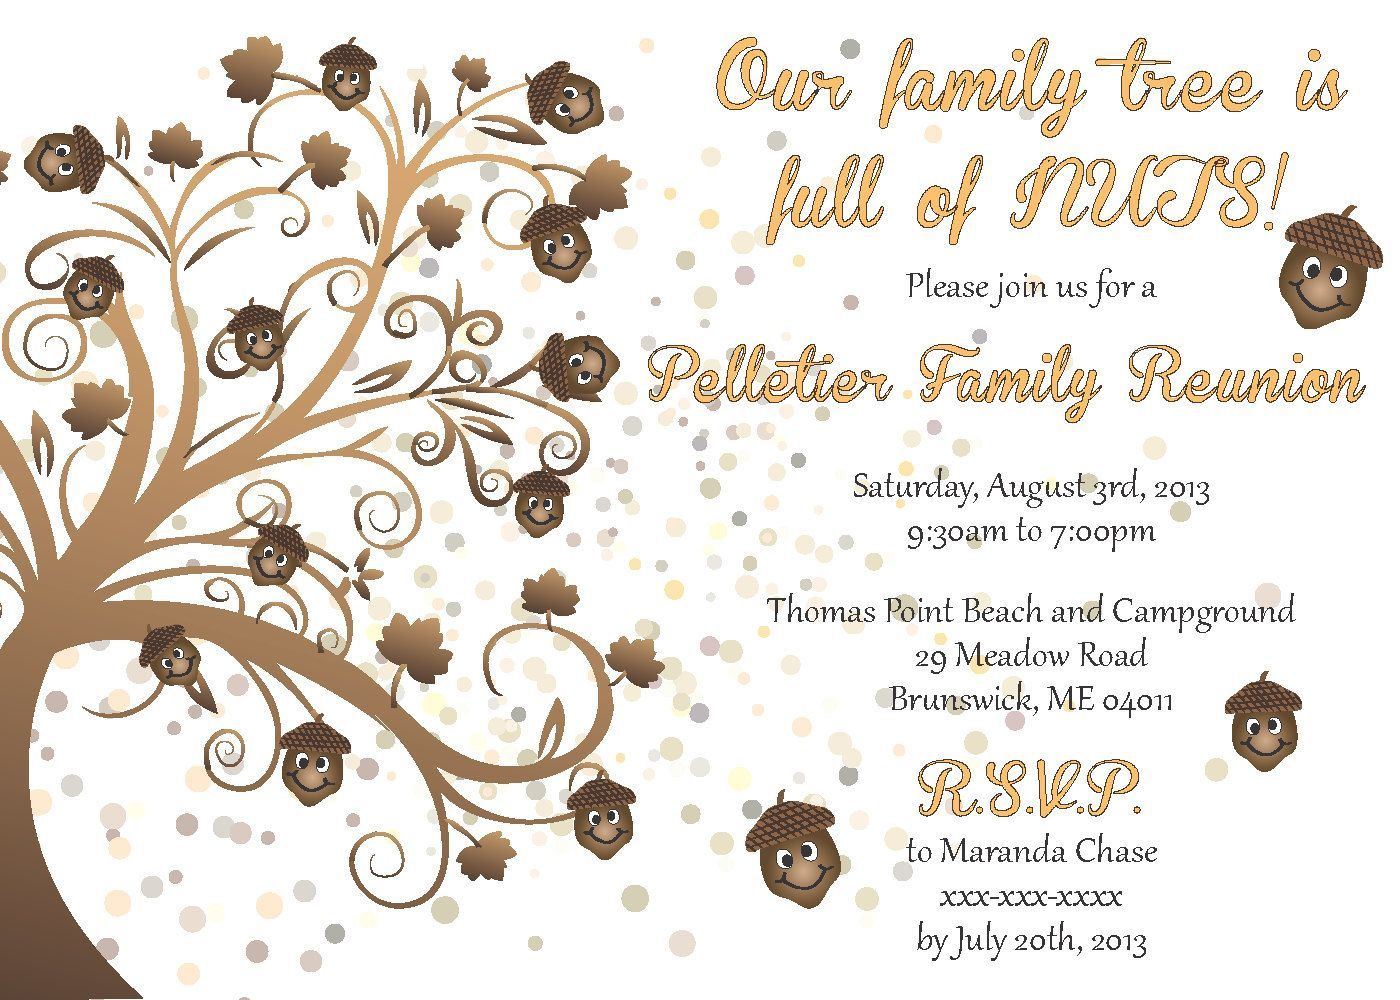 003 Simple Free Printable Family Reunion Invitation Template Highest Quality  Templates FlyerFull